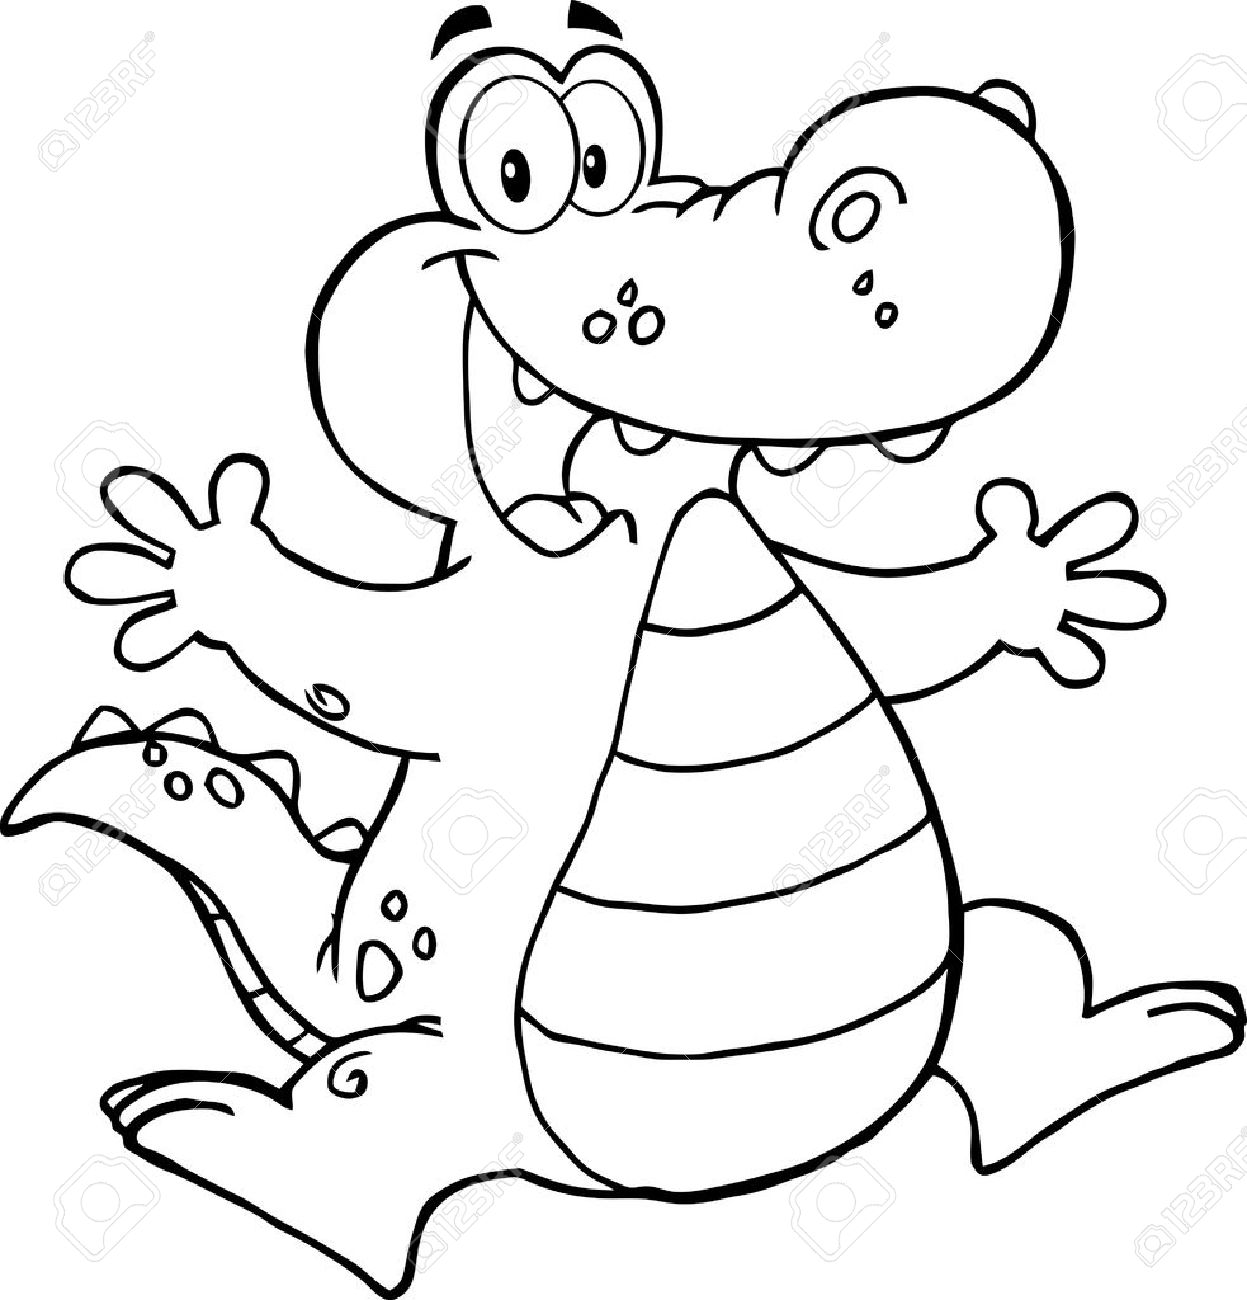 Outlined Happy Alligator Or Crocodile Jumping Royalty Free ... for Clipart Crocodile Black And White  67qdu